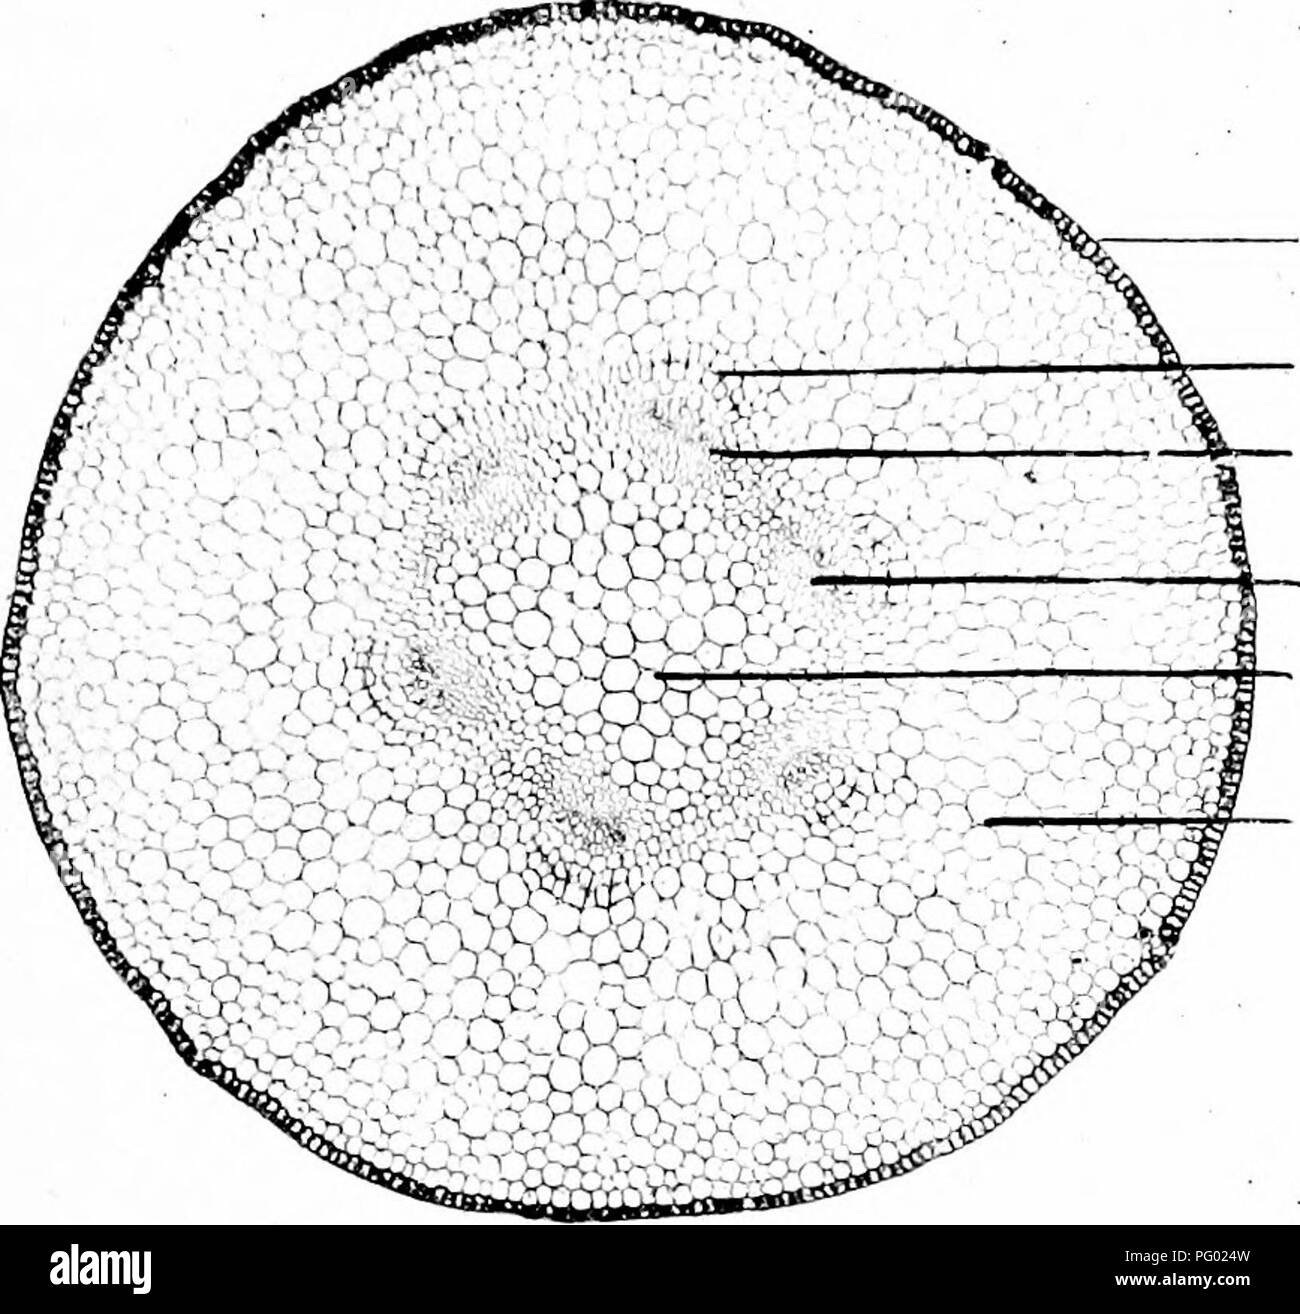 . Photomicrographs of botanical studies. Photomicrography. Cuticle. Endodermis. Pericycle Wood elements developing Central axis. Cortical tissue.. Please note that these images are extracted from scanned page images that may have been digitally enhanced for readability - coloration and appearance of these illustrations may not perfectly resemble the original work.. Flatters, Milborne & McKechnie Ltd. Manchester : Flaters, Milborne & McKechnie - Stock Image